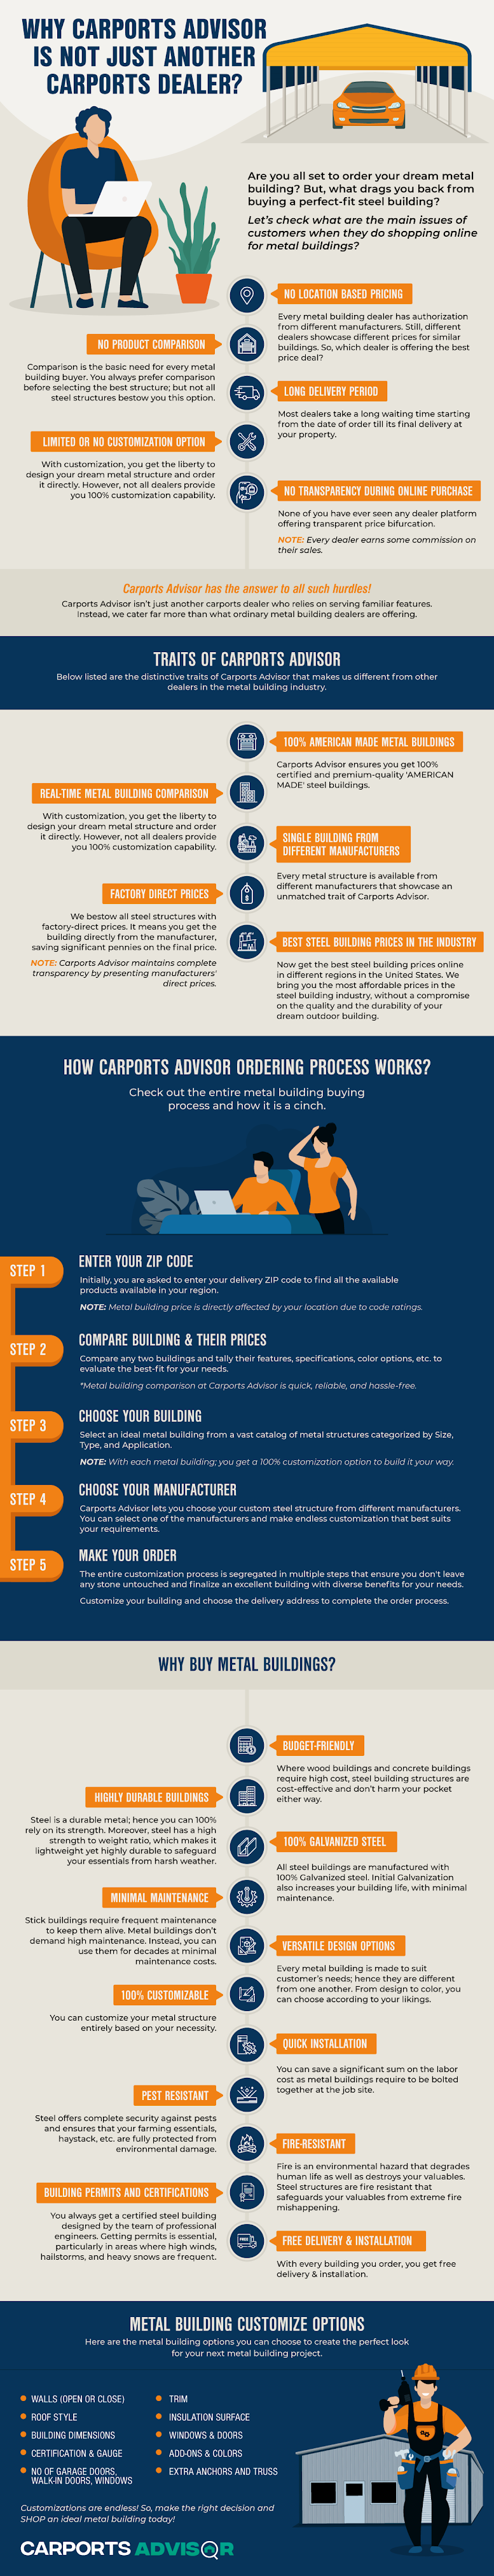 Why Carports Advisor is Not Just Another Carports Dealer #infographic #Construction #infographics